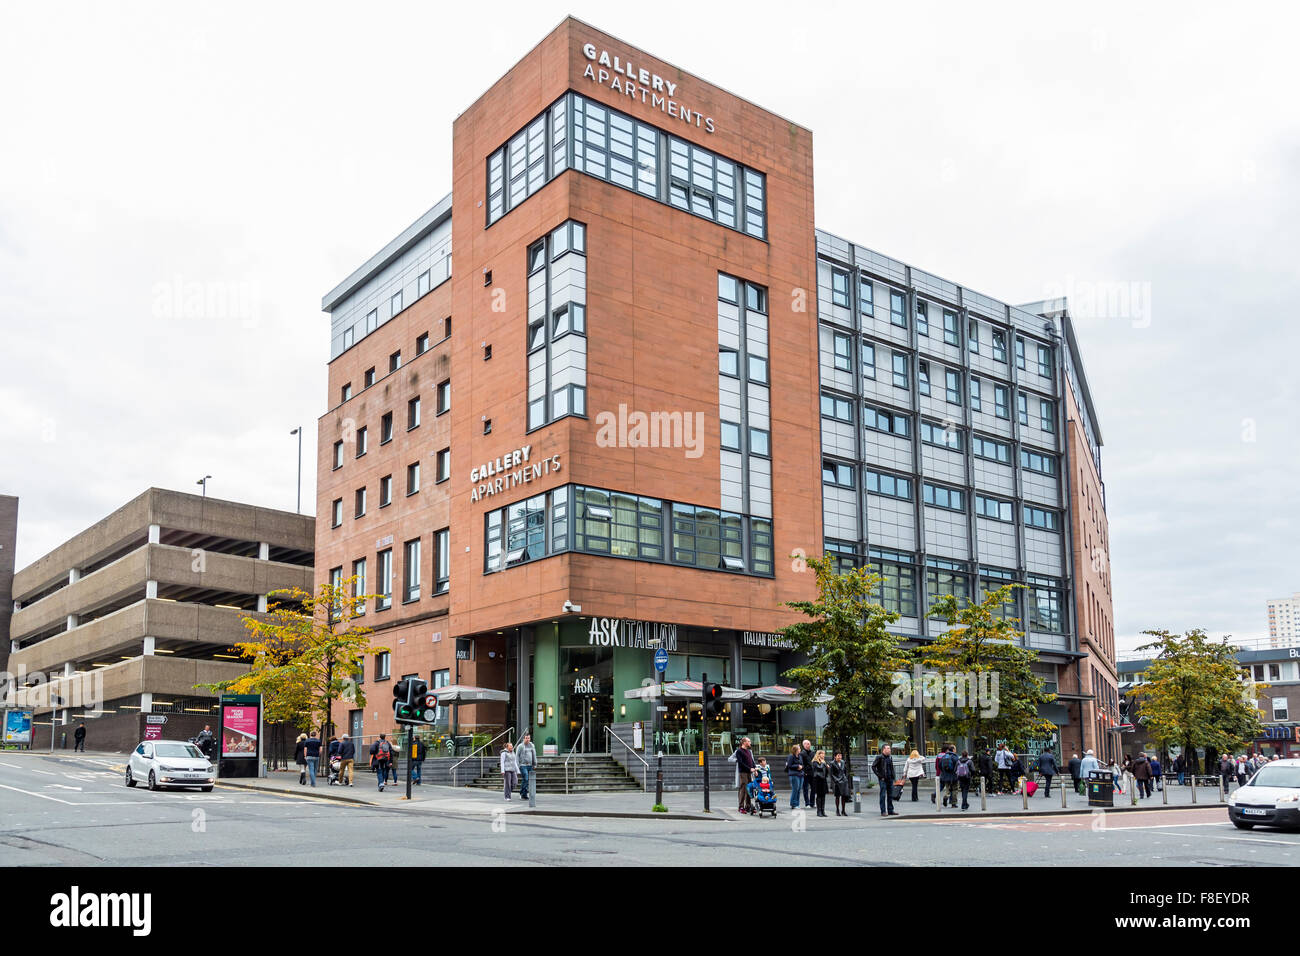 Gallery Apartments student accommodation in Glasgow city centre, Scotland, UK - Stock Image